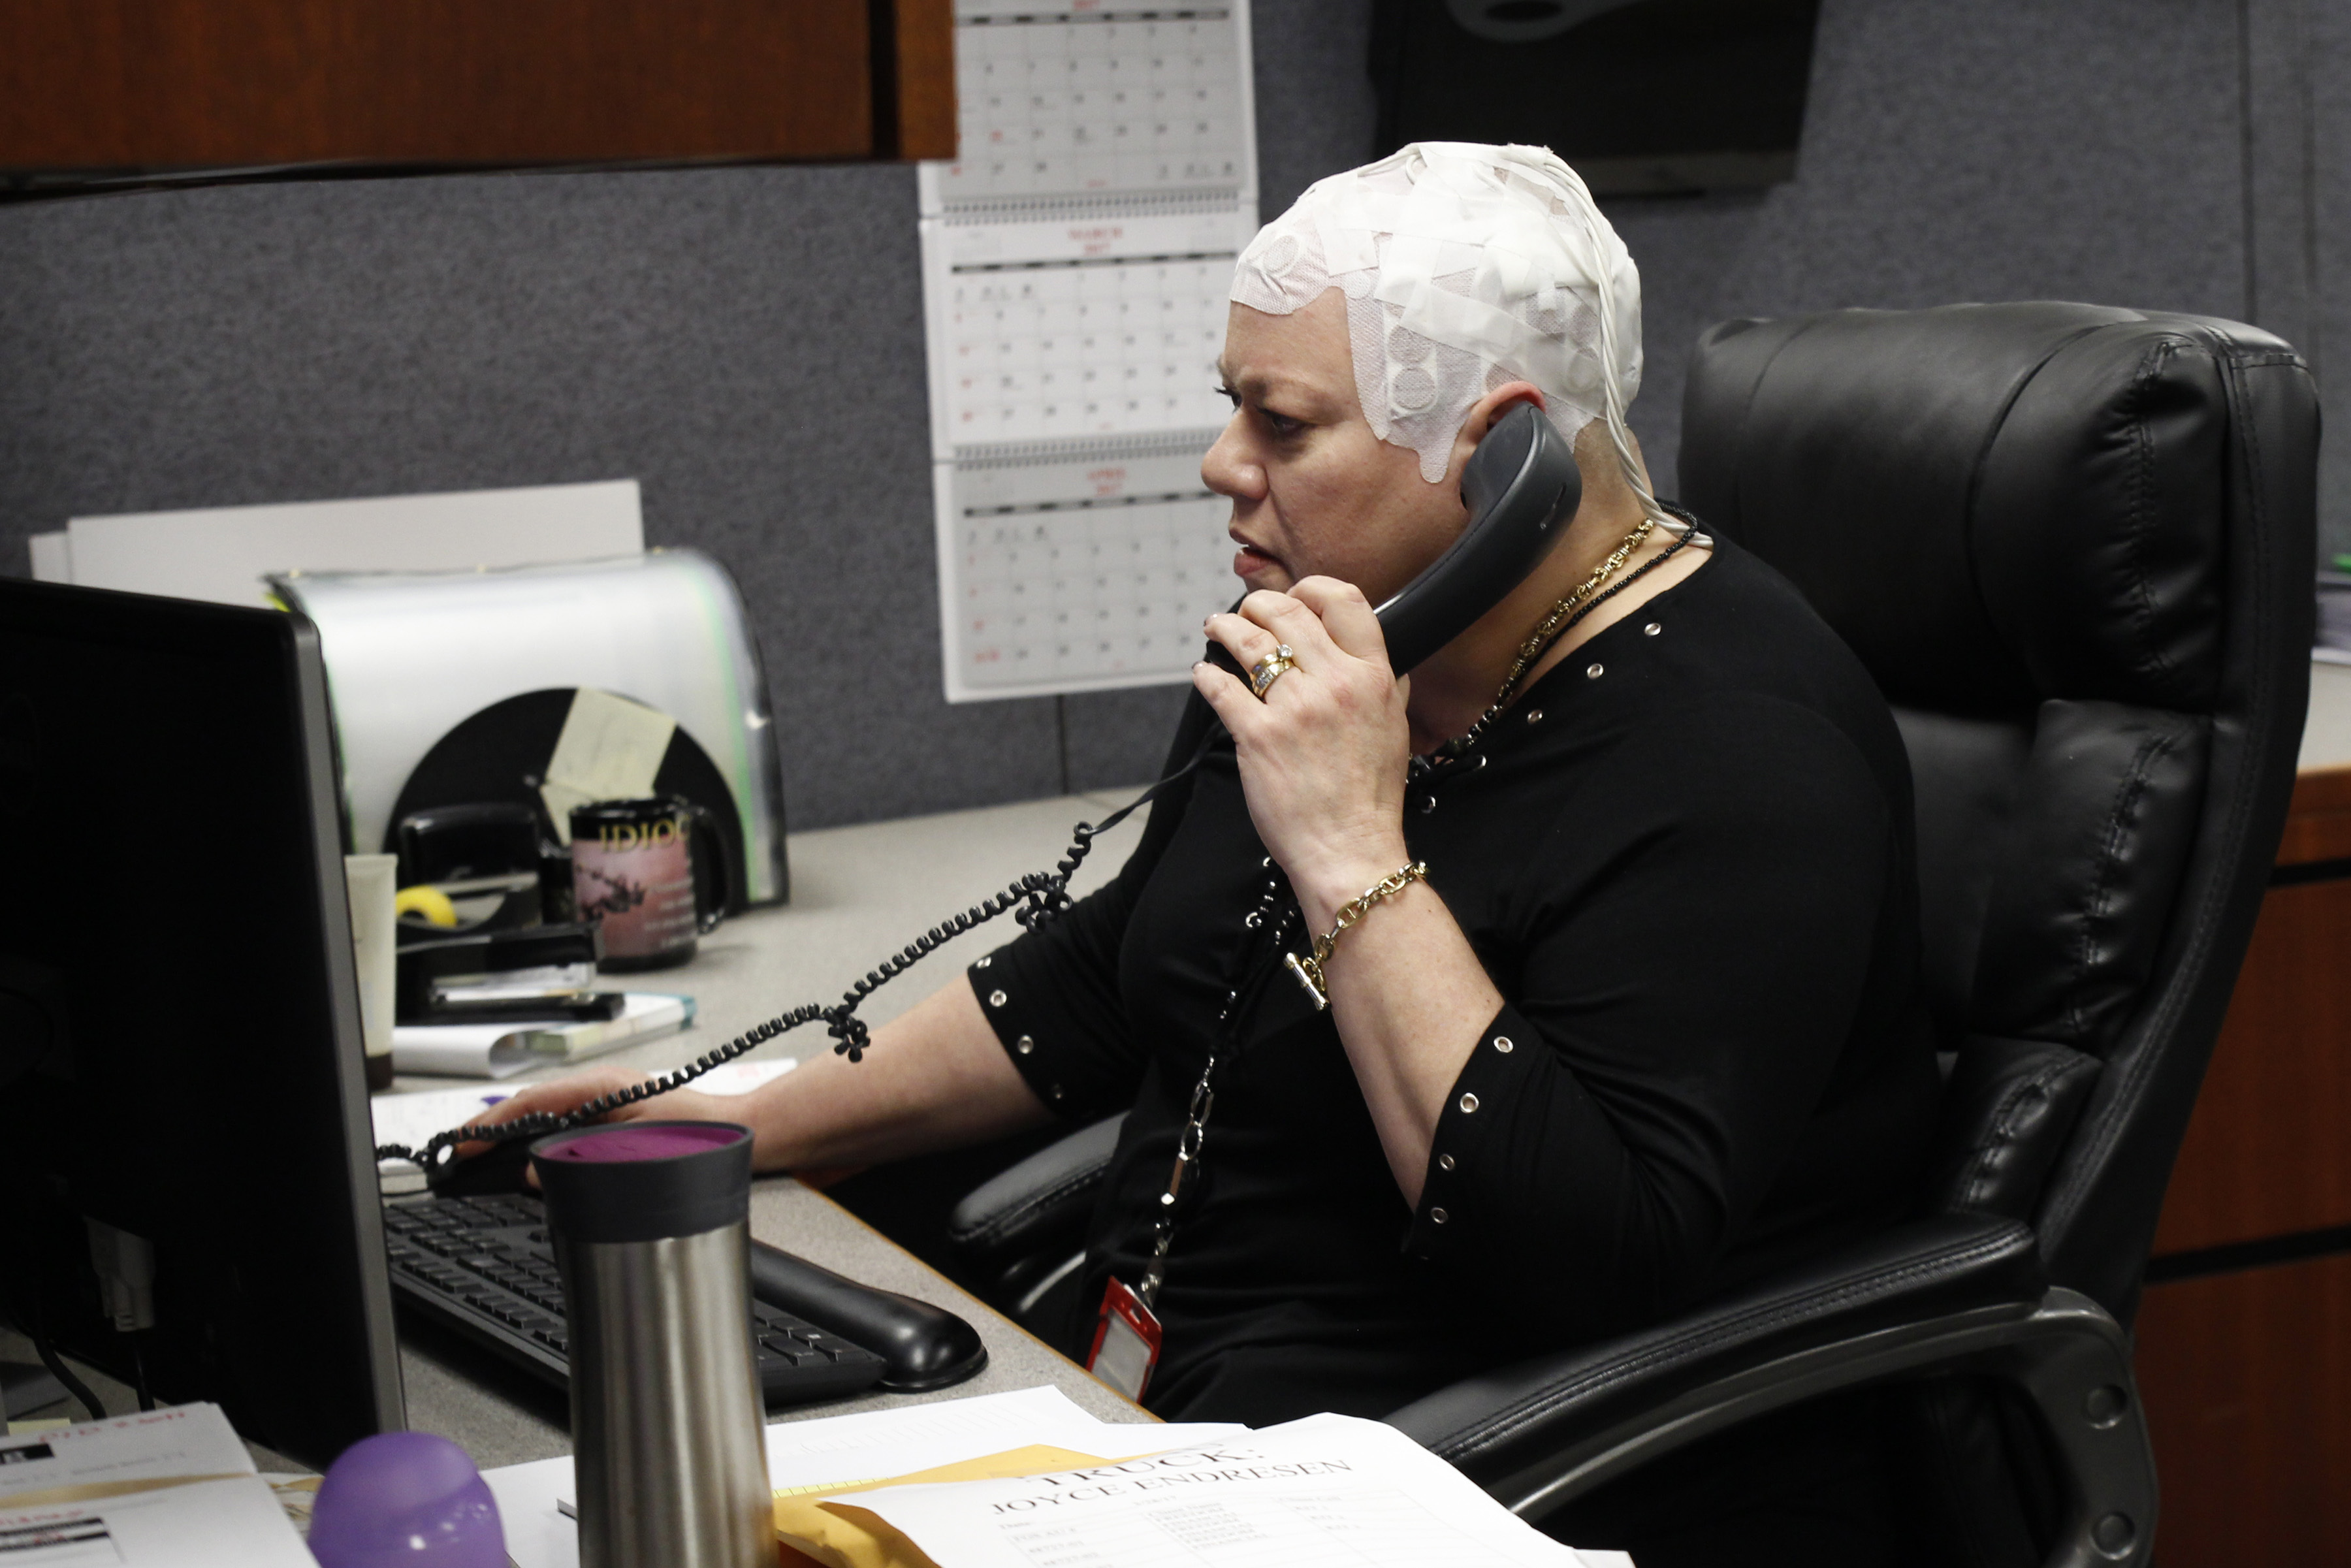 In this March 29, 2017 photo, Joyce Endresen wears an Optune therapy device for brain cancer, as she speaks on a phone at work in Aurora, Ill. (AP Photo/Carrie Antlfinger)